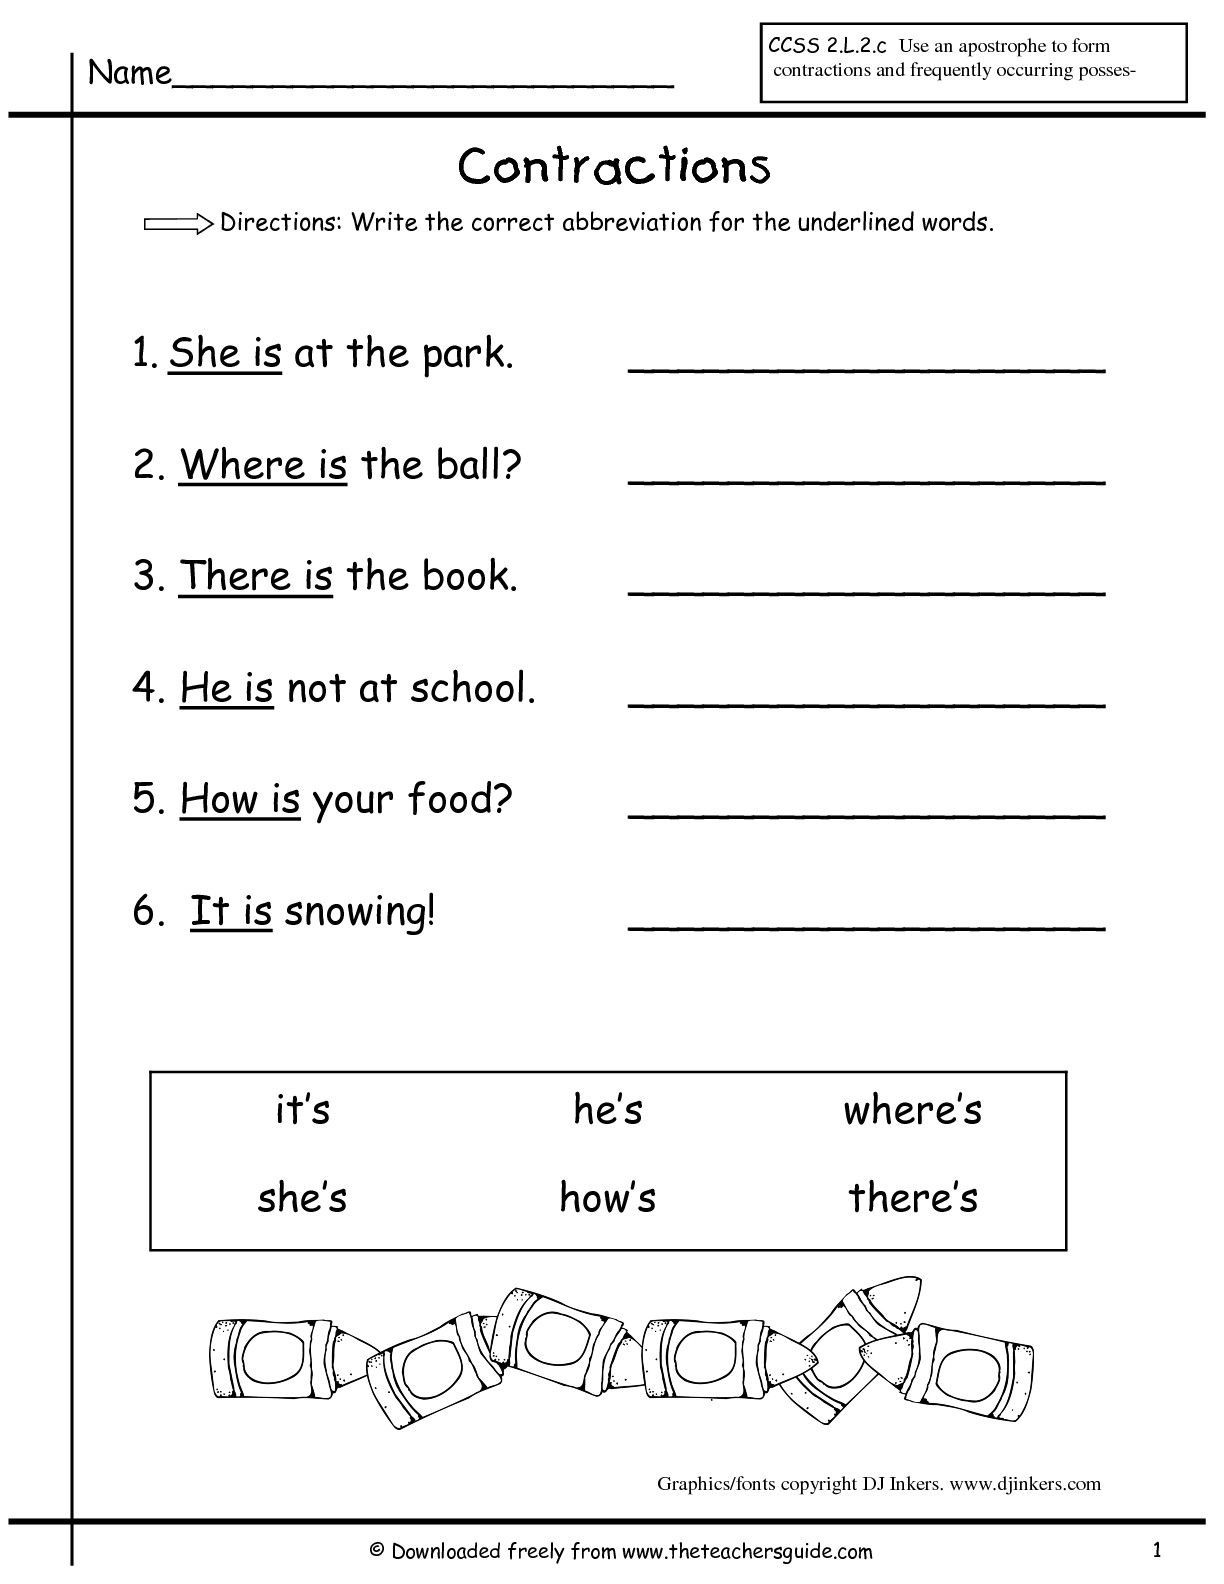 Contraction Worksheets 1st Grade Inglaªs Inglaªs With Images